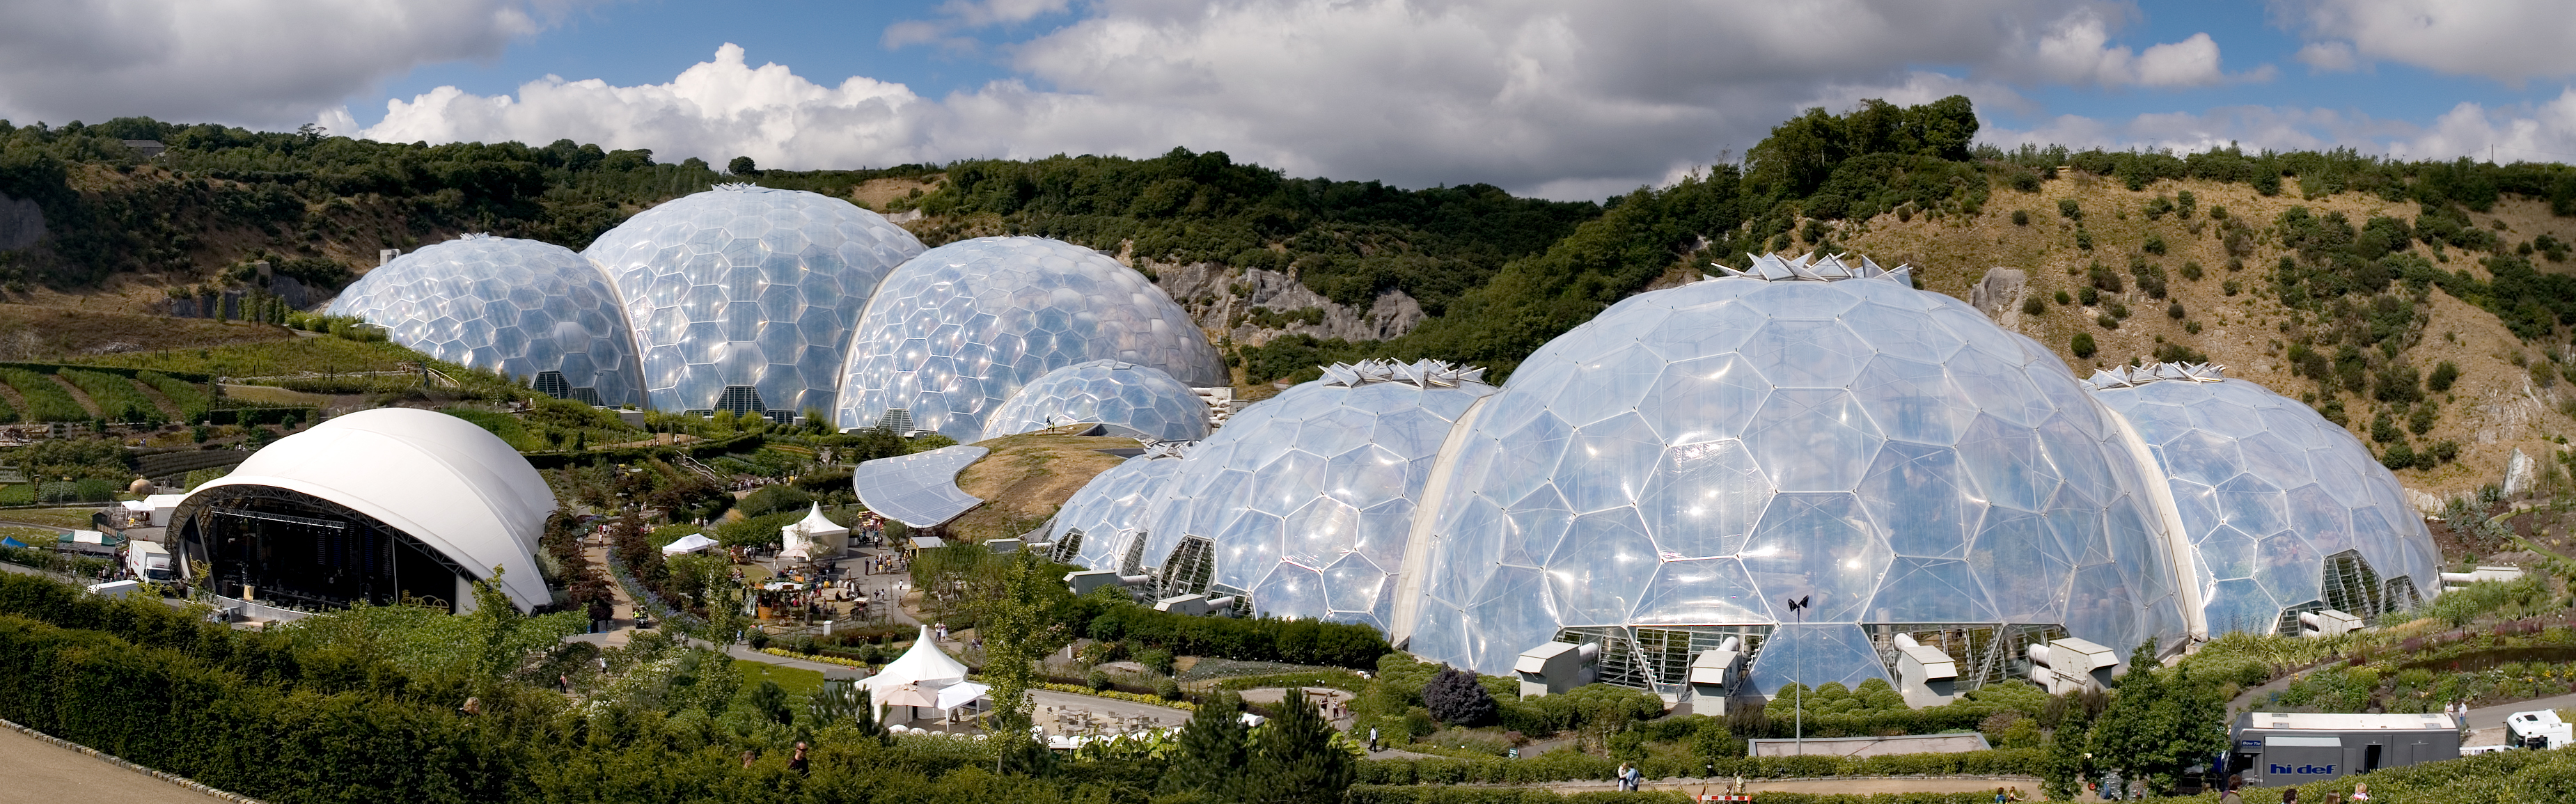 File Eden Project Geodesic Domes Panorama Jpg Wikipedia